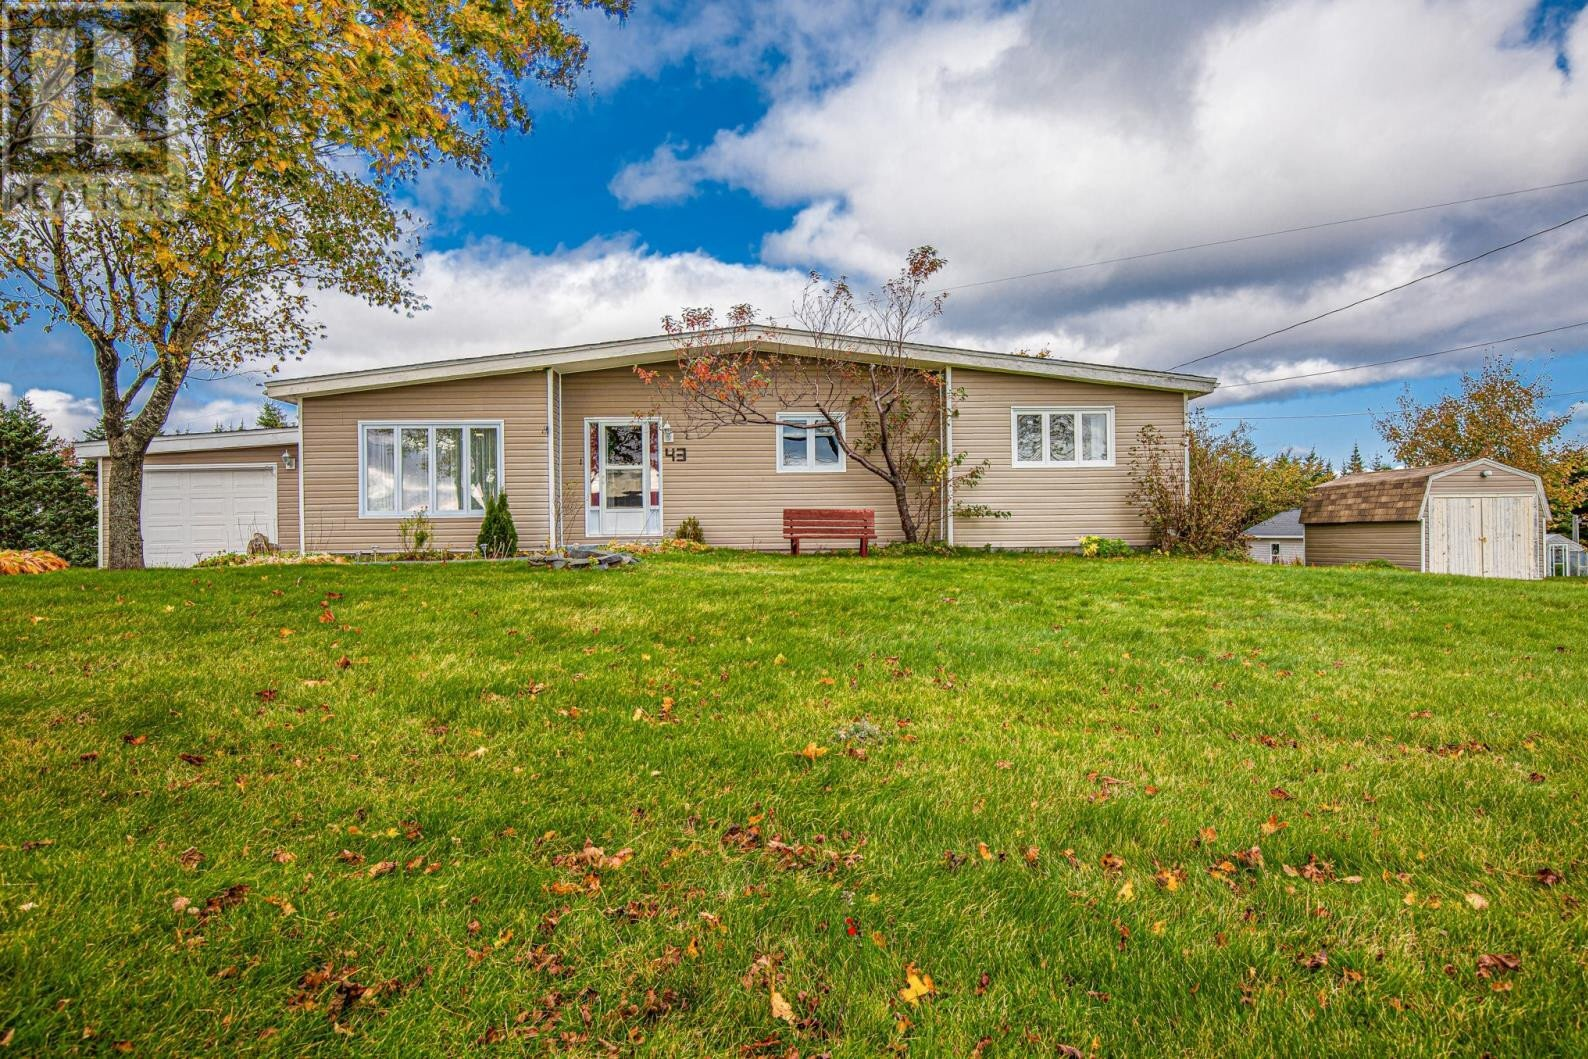 House for sale at 43 Devereauxs Ln Logy Bay Newfoundland - MLS: 1222839